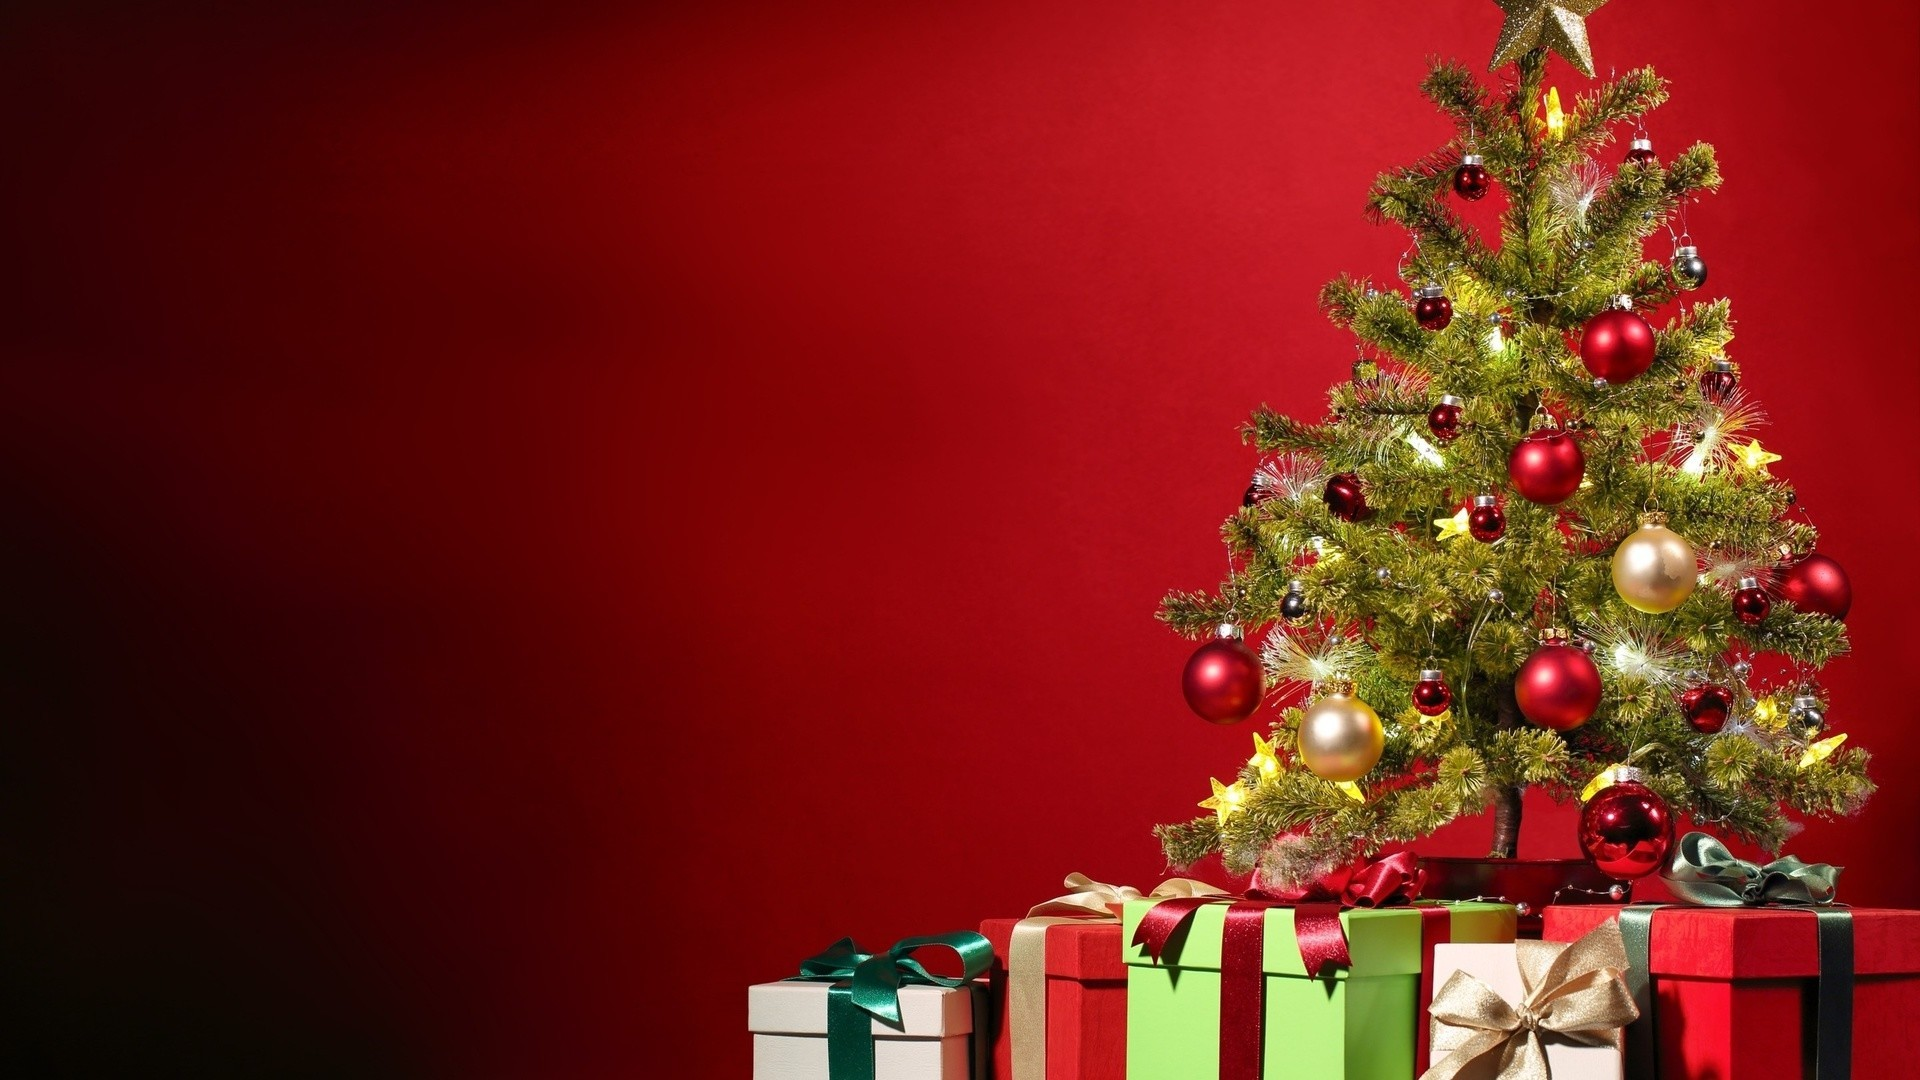 Christmas Background Images Hd.Merry Christmas Background Download Free Cool Hd